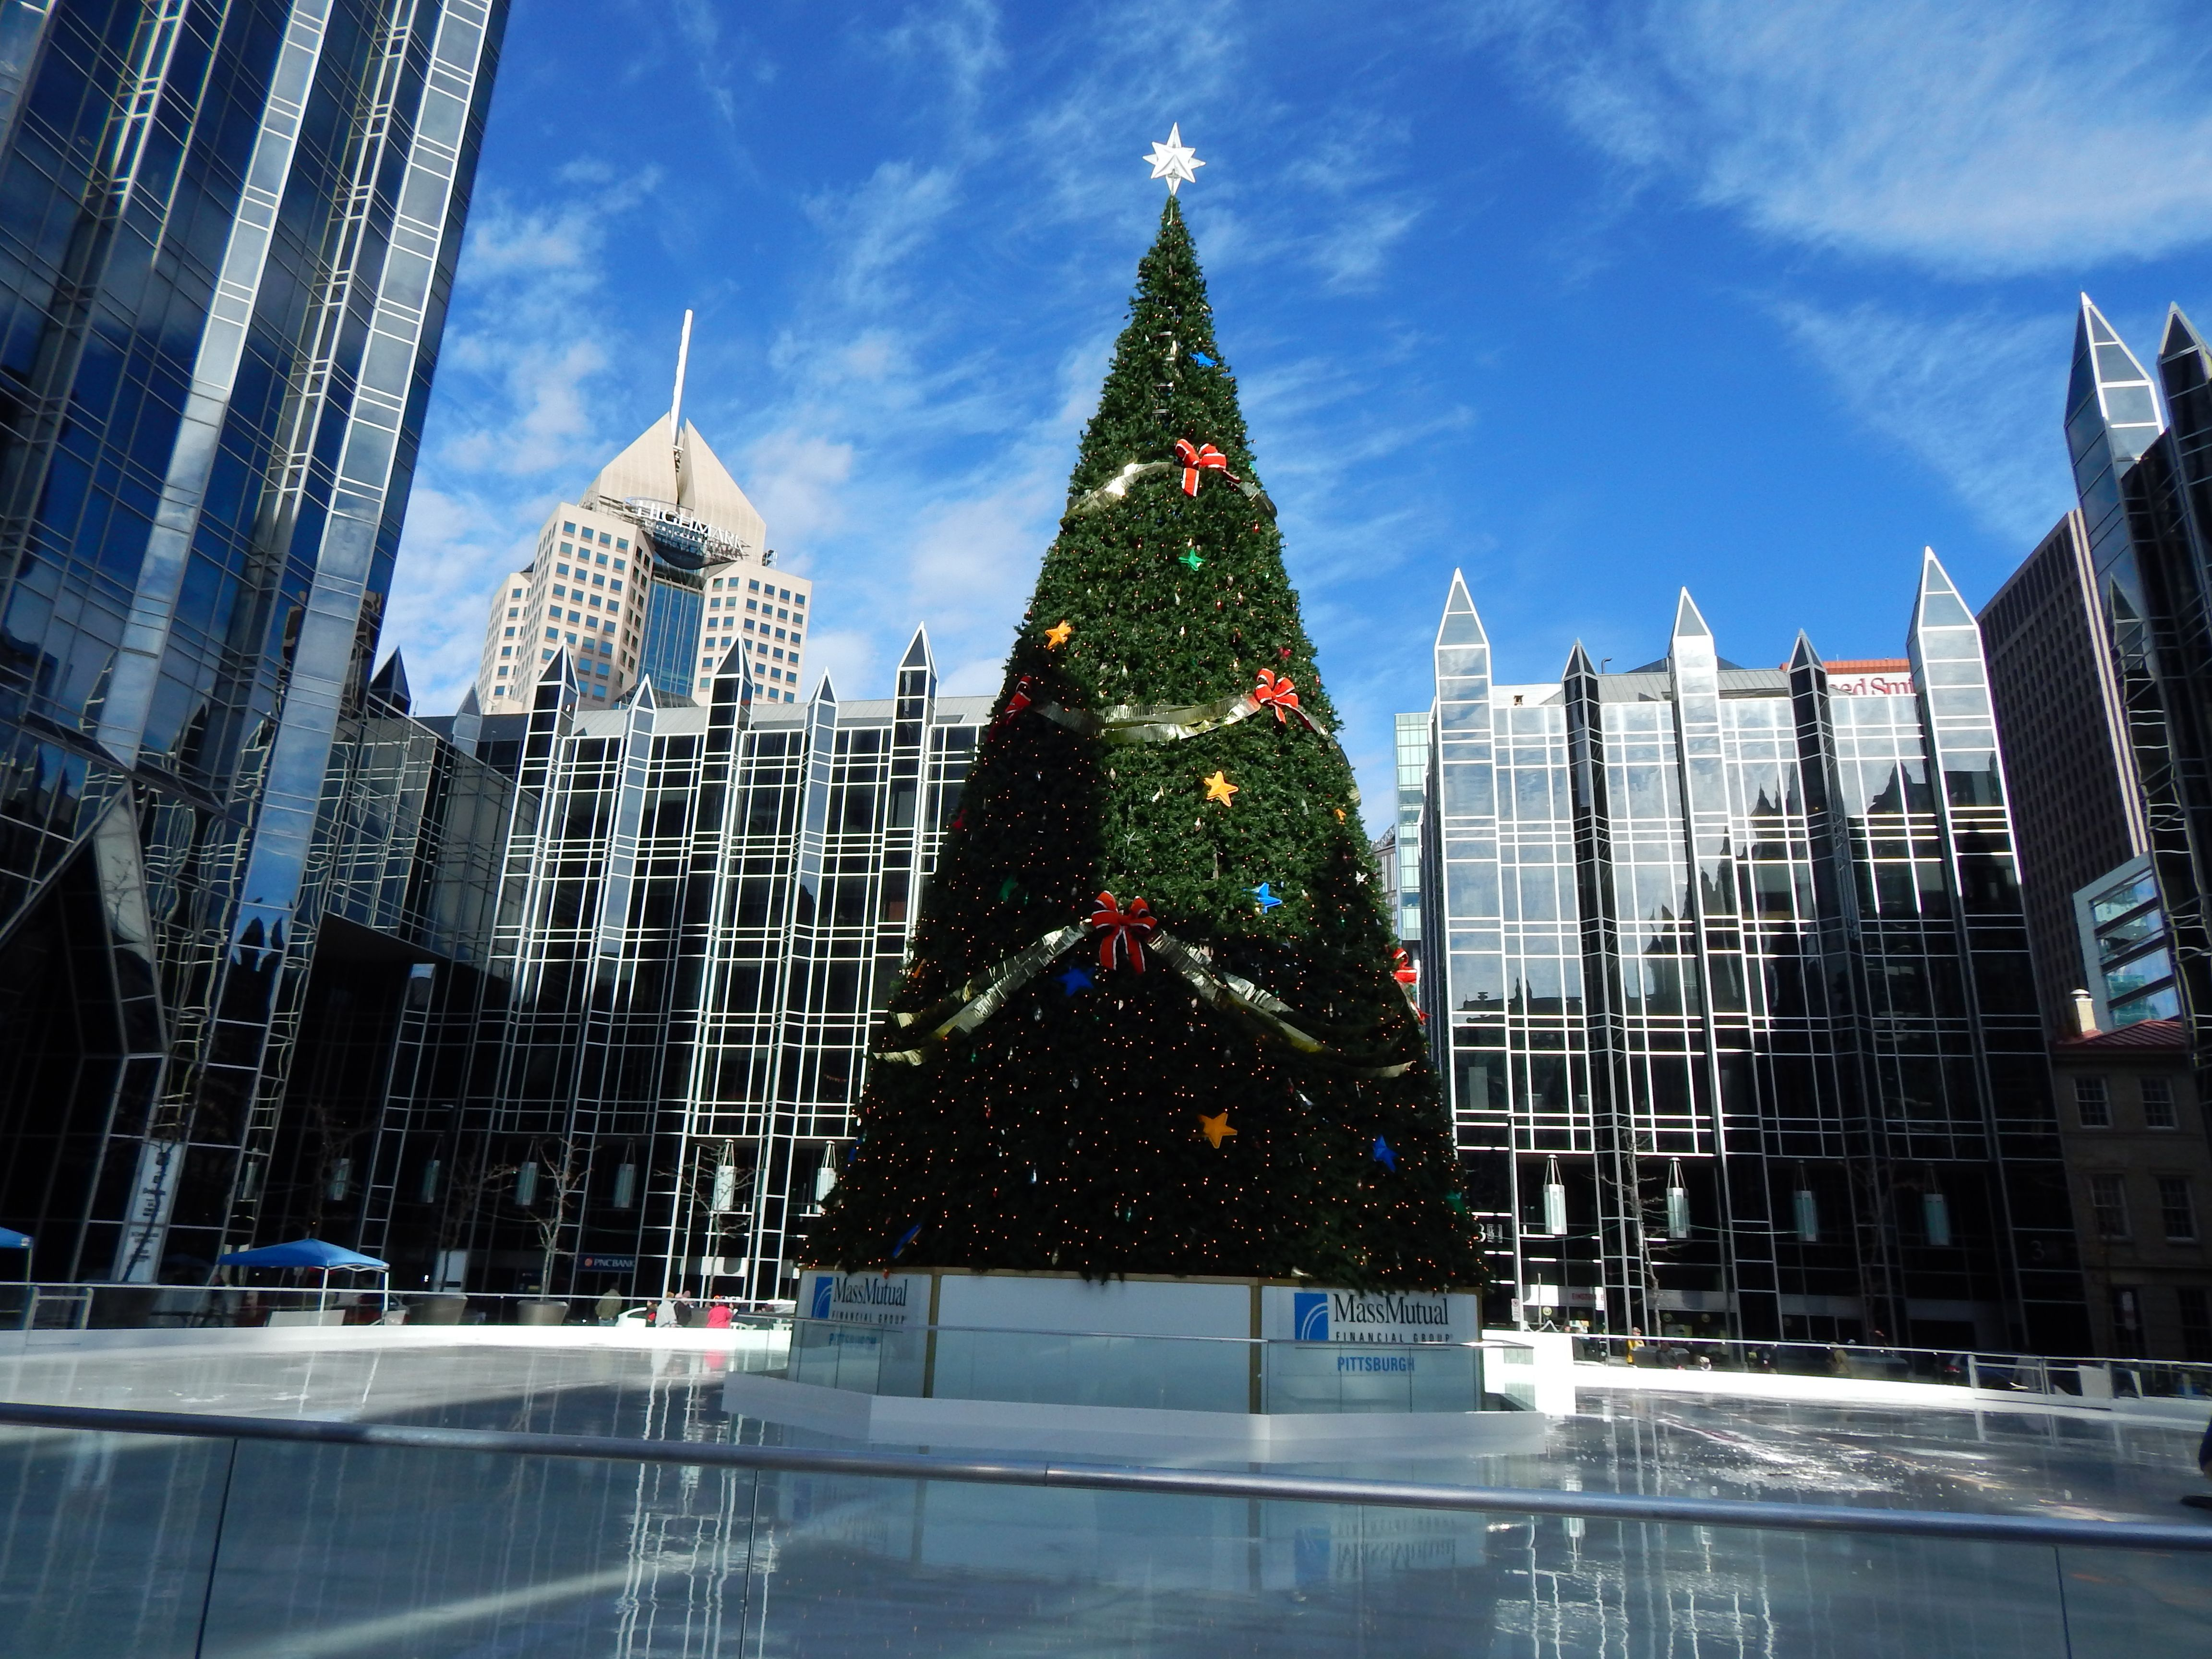 outdoor ice rink ppg plaza christmas 2015 visions of pittsburgh